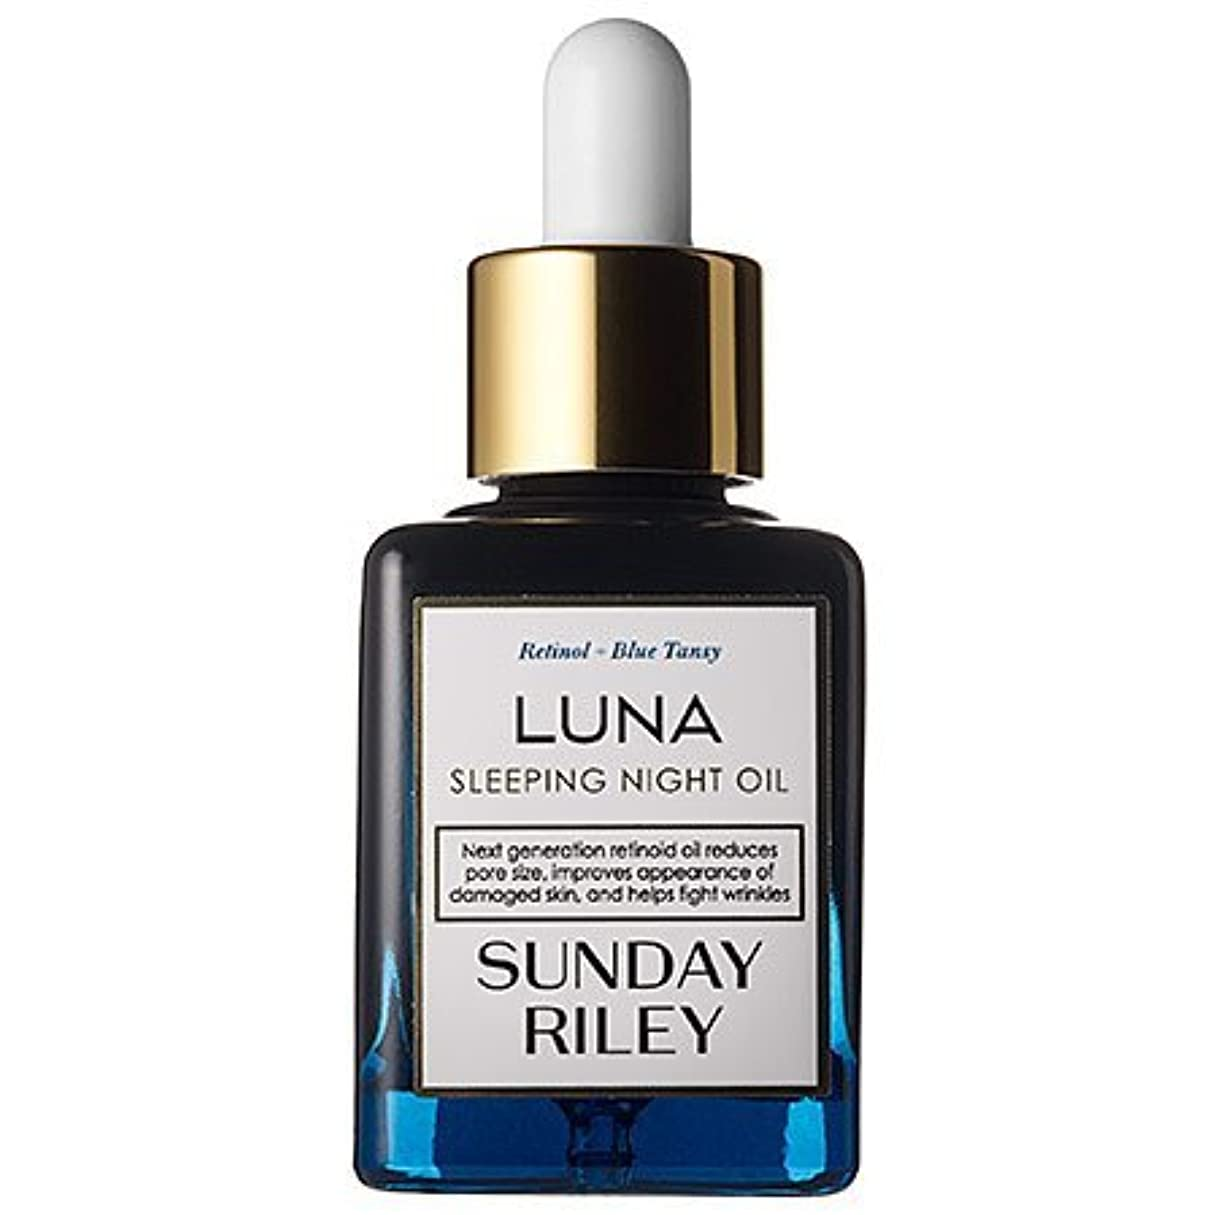 Sunday Riley Luna Sleeping Night Oil (0.5 oz) [並行輸入品]